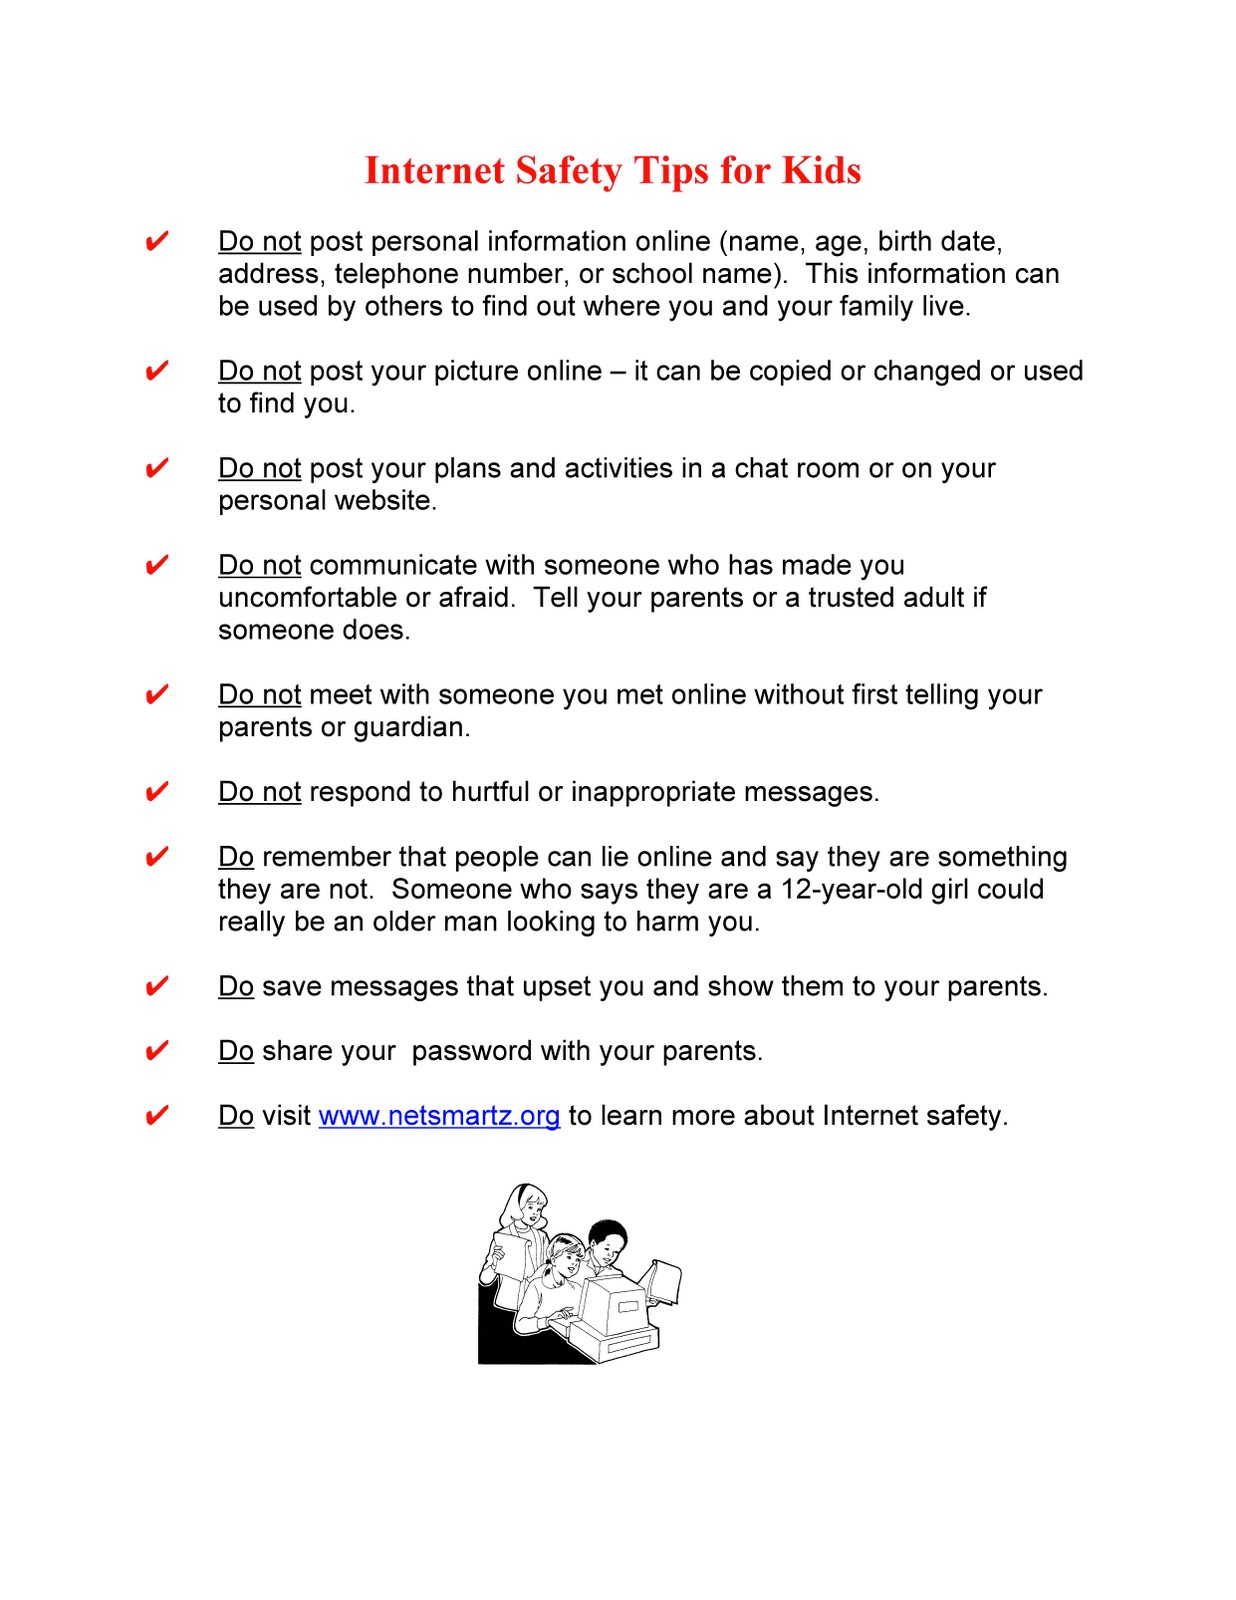 Hype: Internet safety tips for elementary students and parents